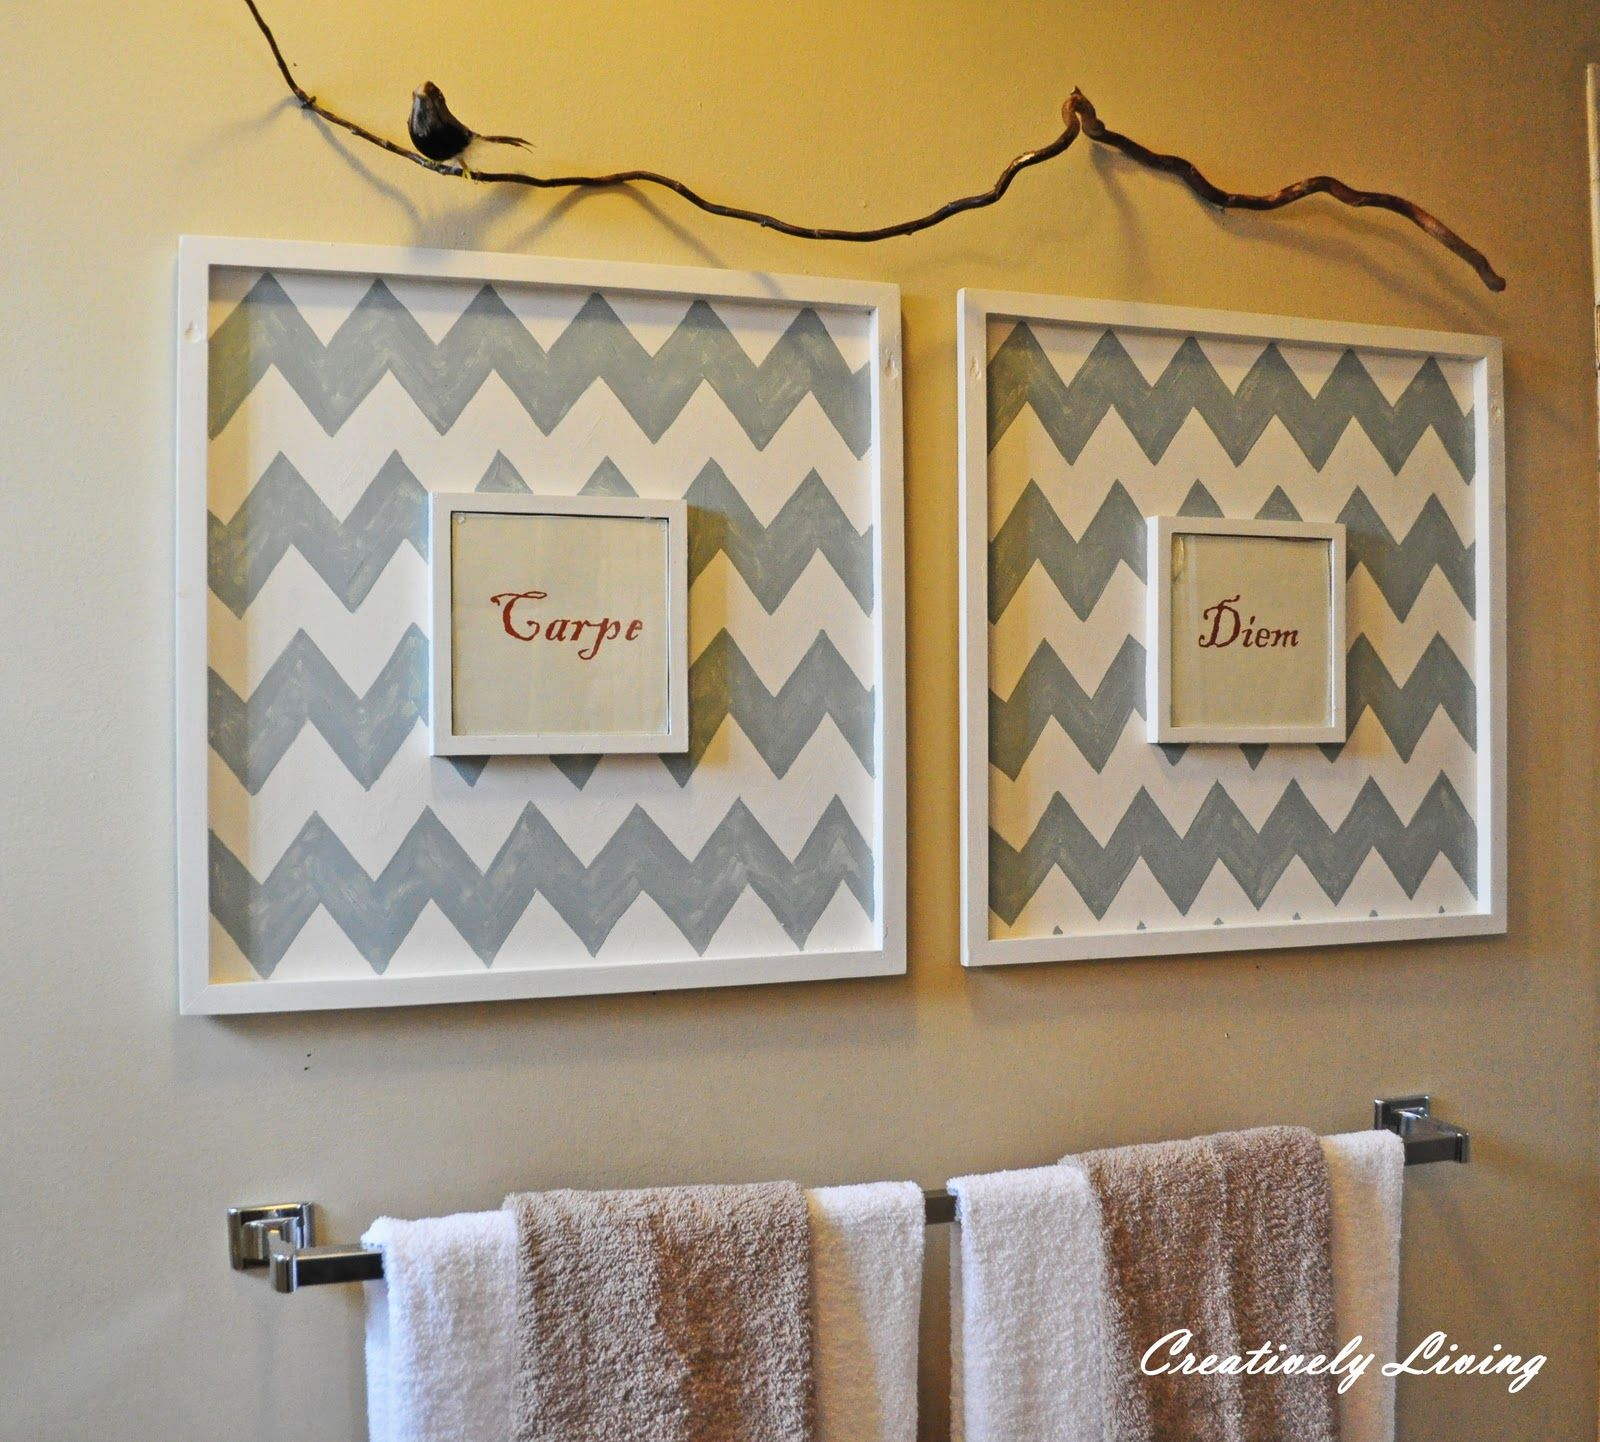 Ordinaire Bathroom Wall Art   Creatively Living Blog